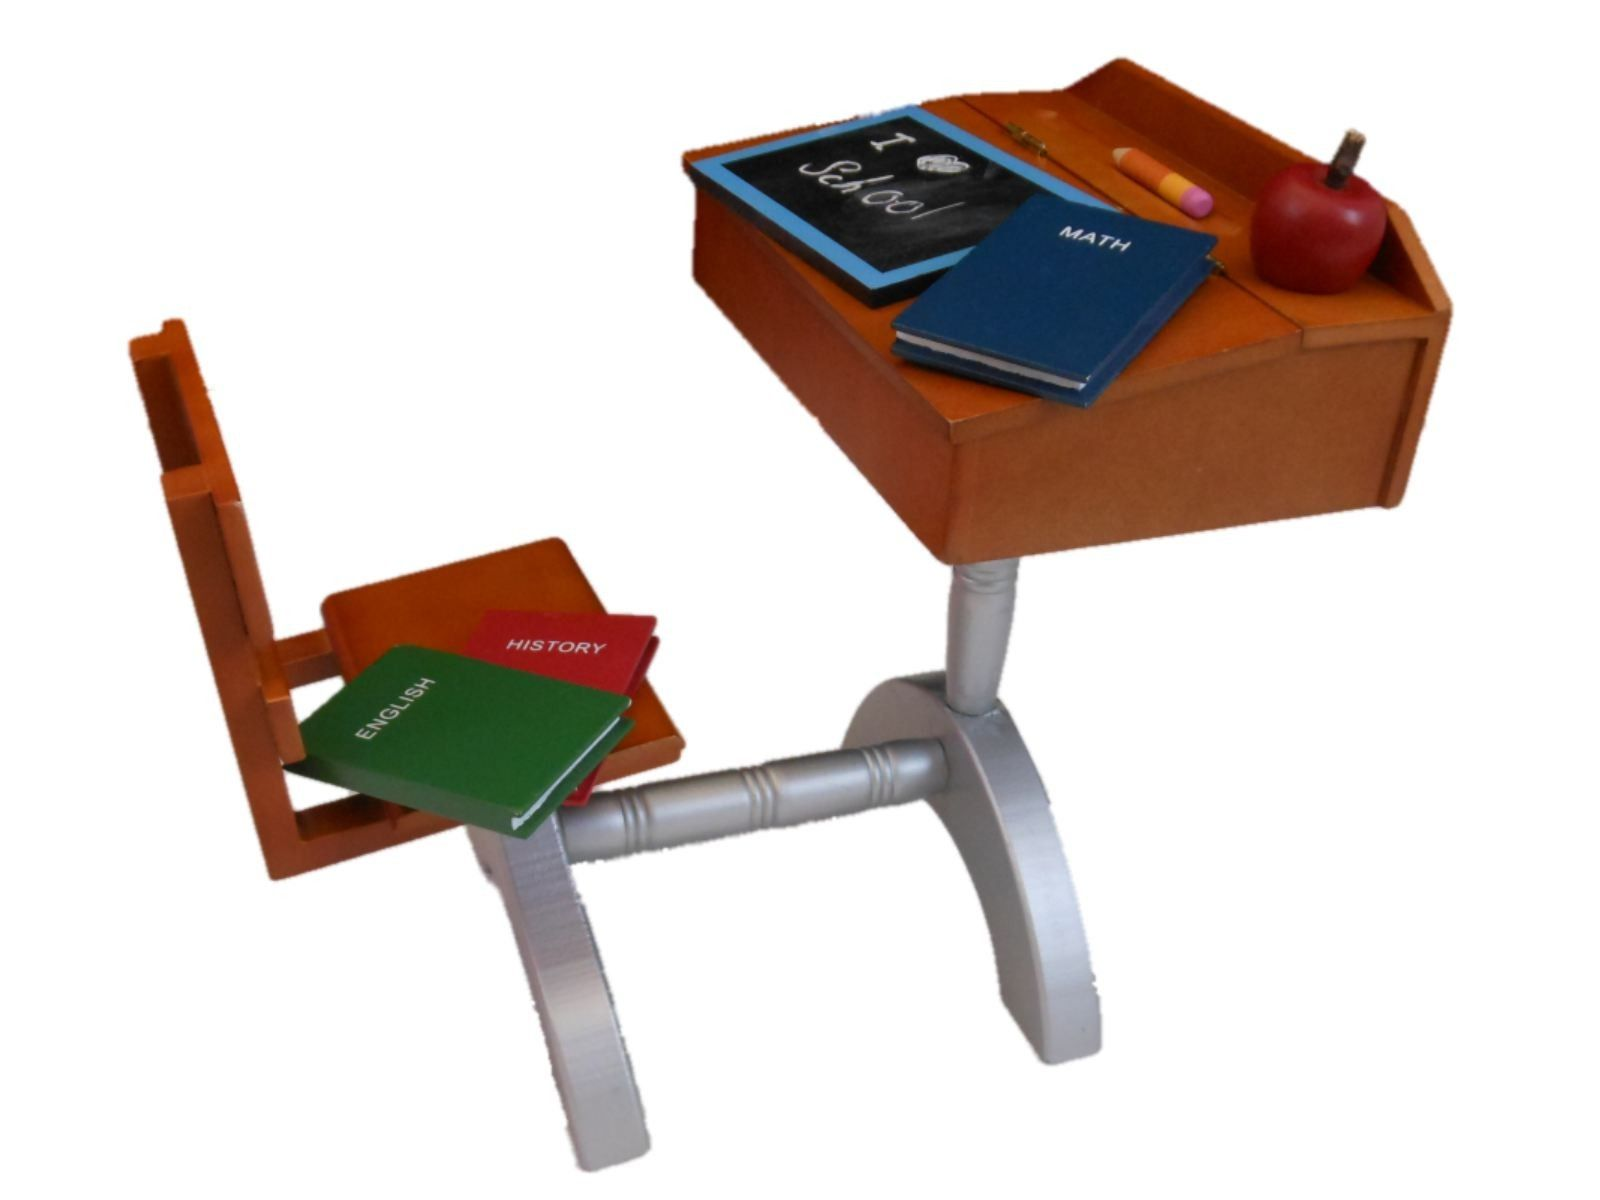 Amazing Value And Quality Our 1930s School Desk Sized Perfectly